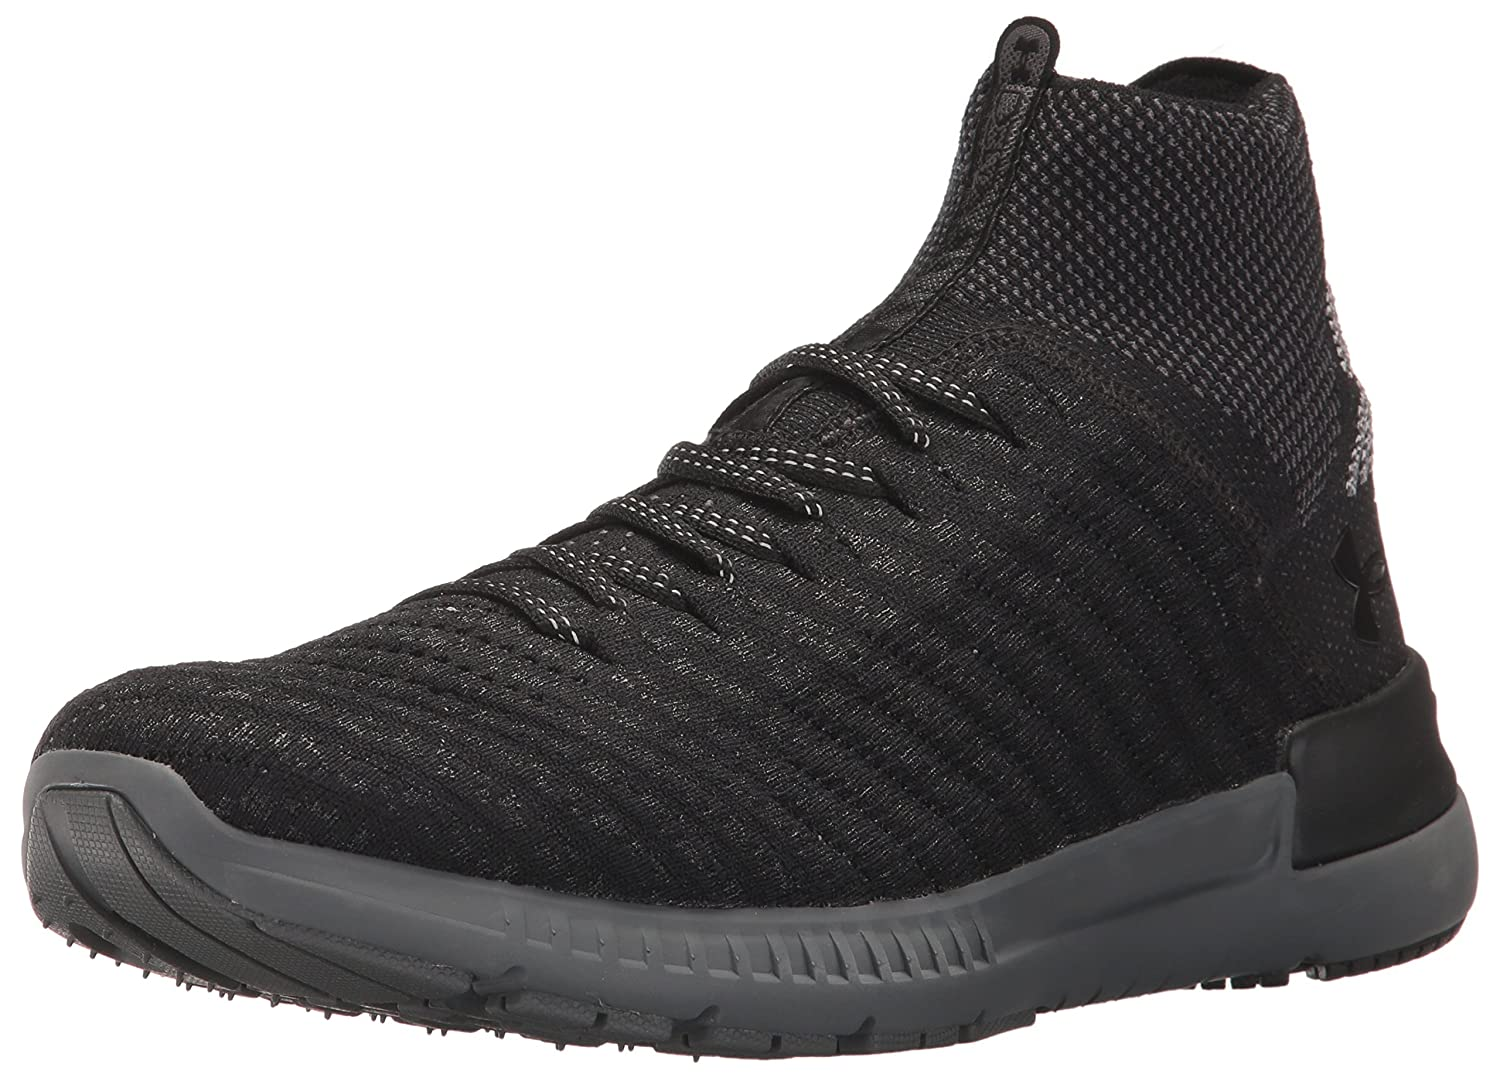 Under Armour mens Micro G Pursuit Running Shoe